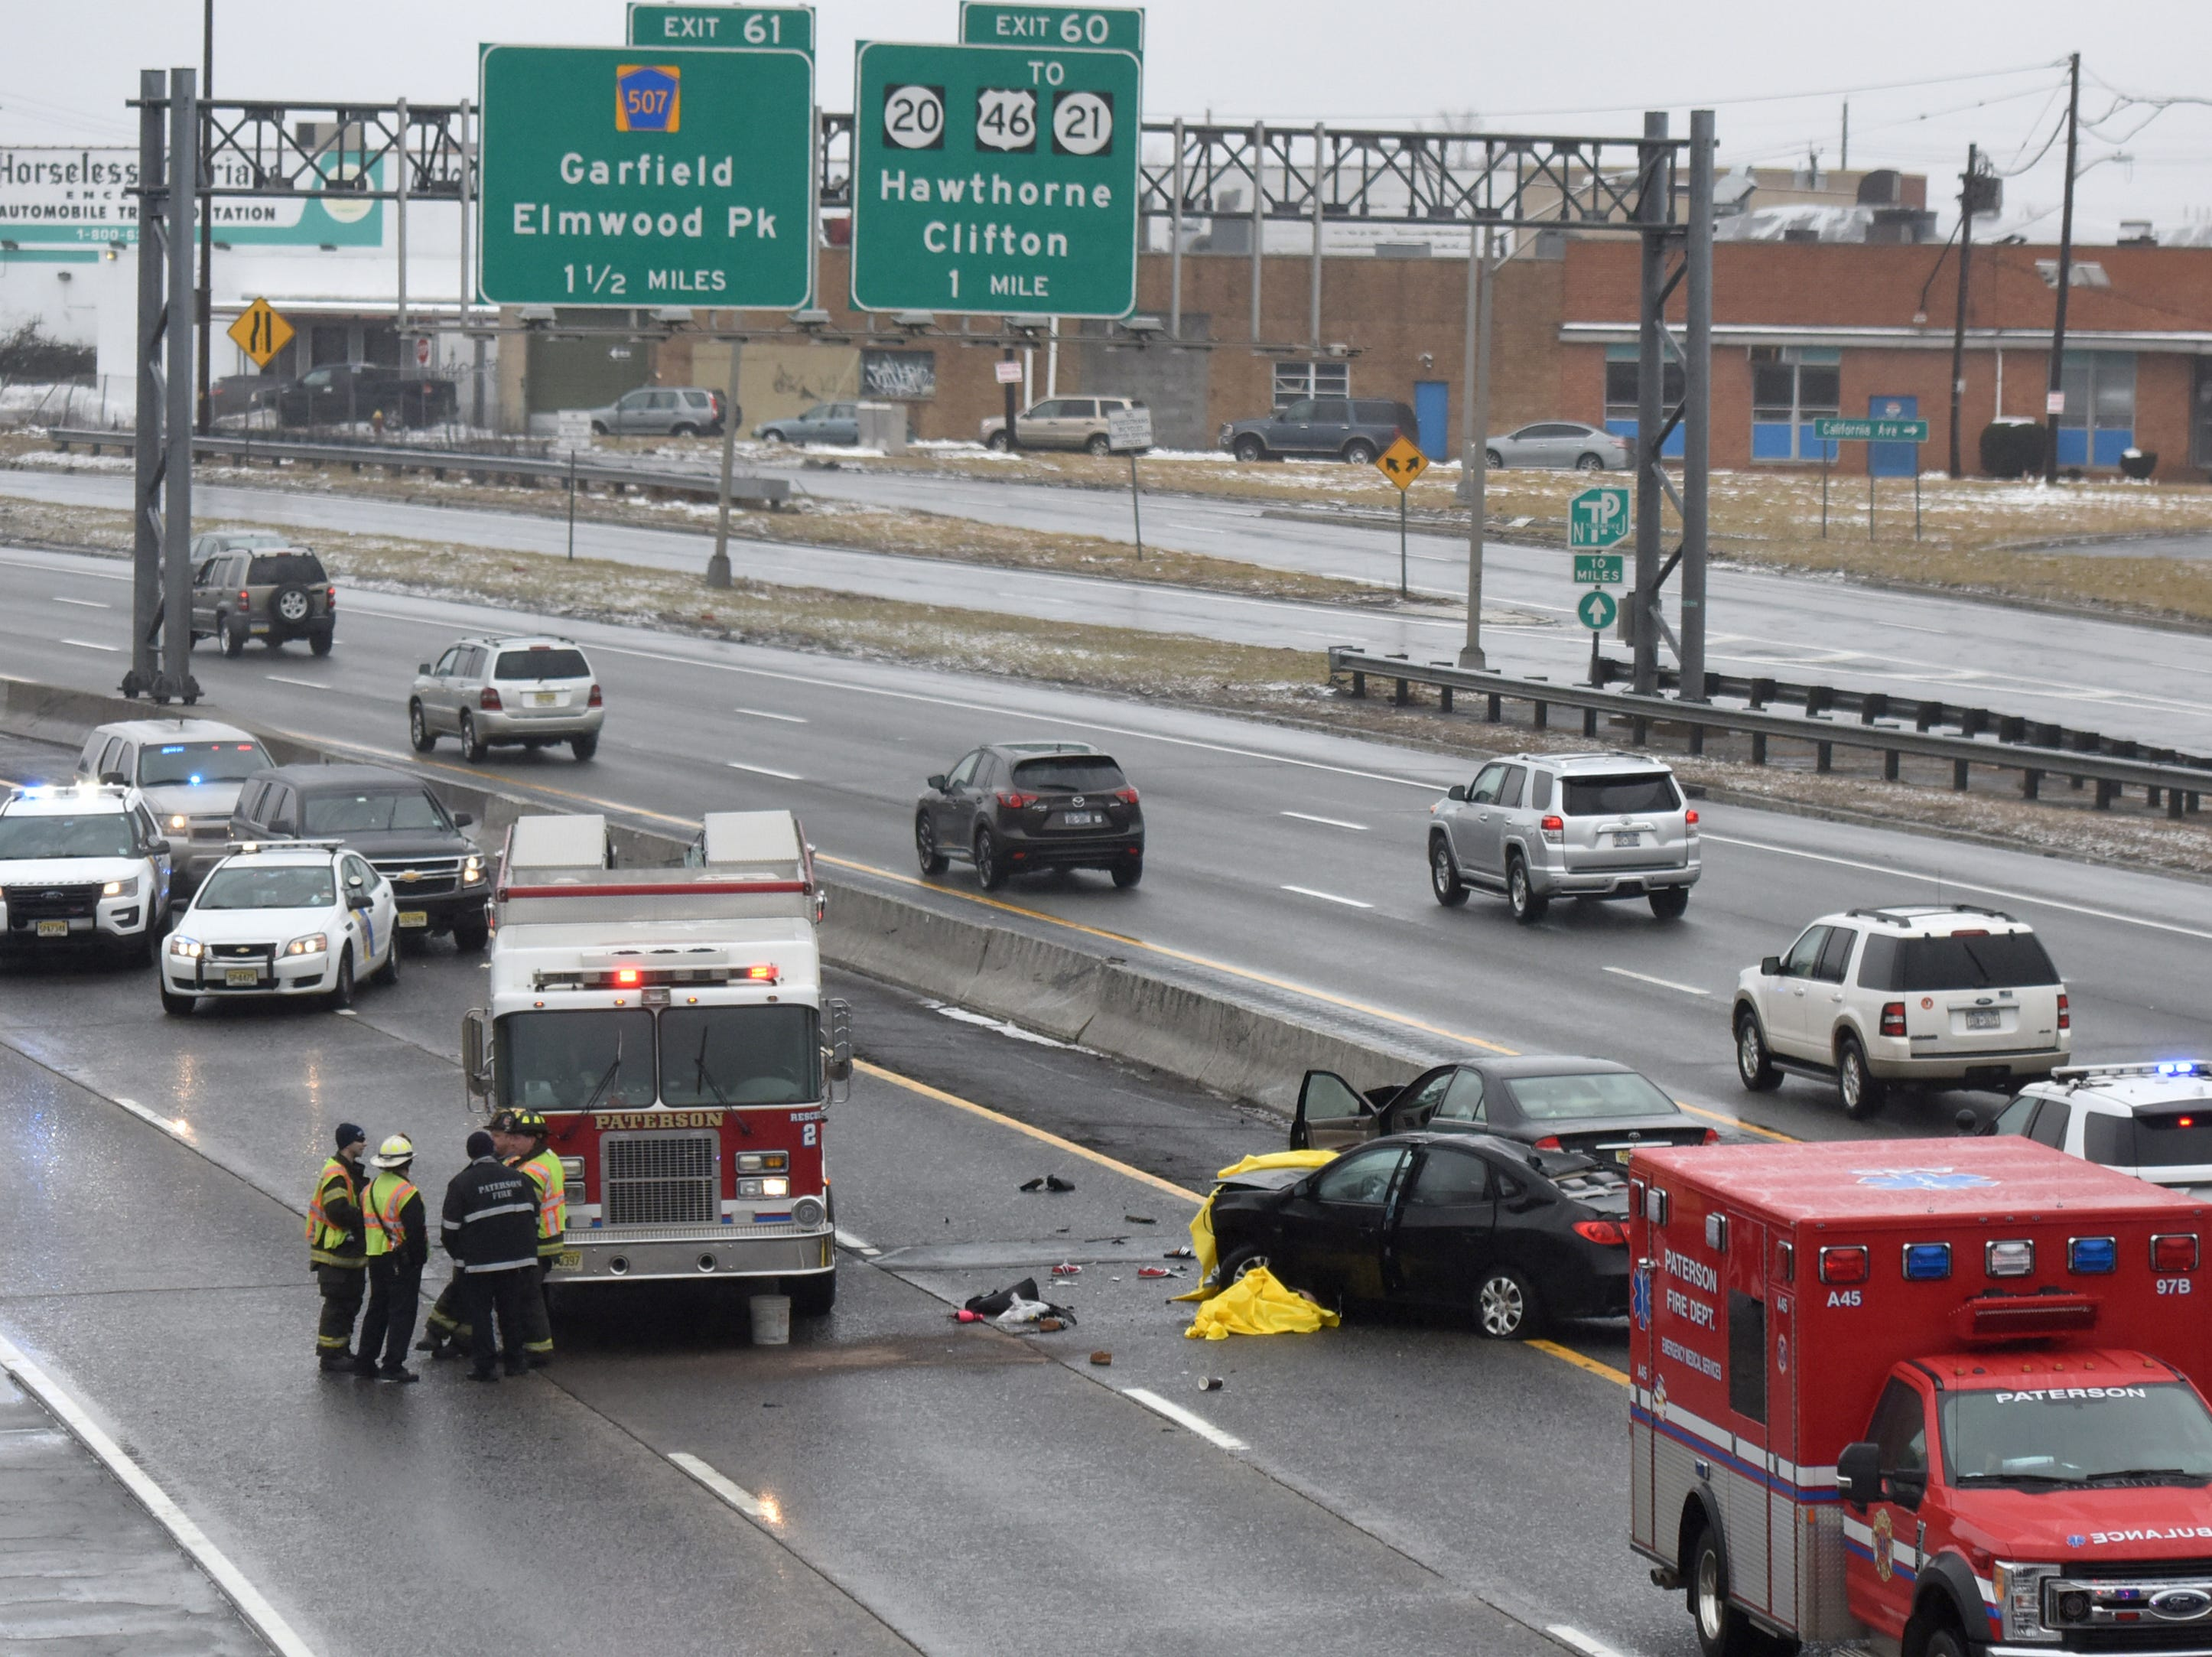 Two people were killed in a crash along Route 80 W near Madison Ave. exit in Paterson on Sunday, March 10, 2019.